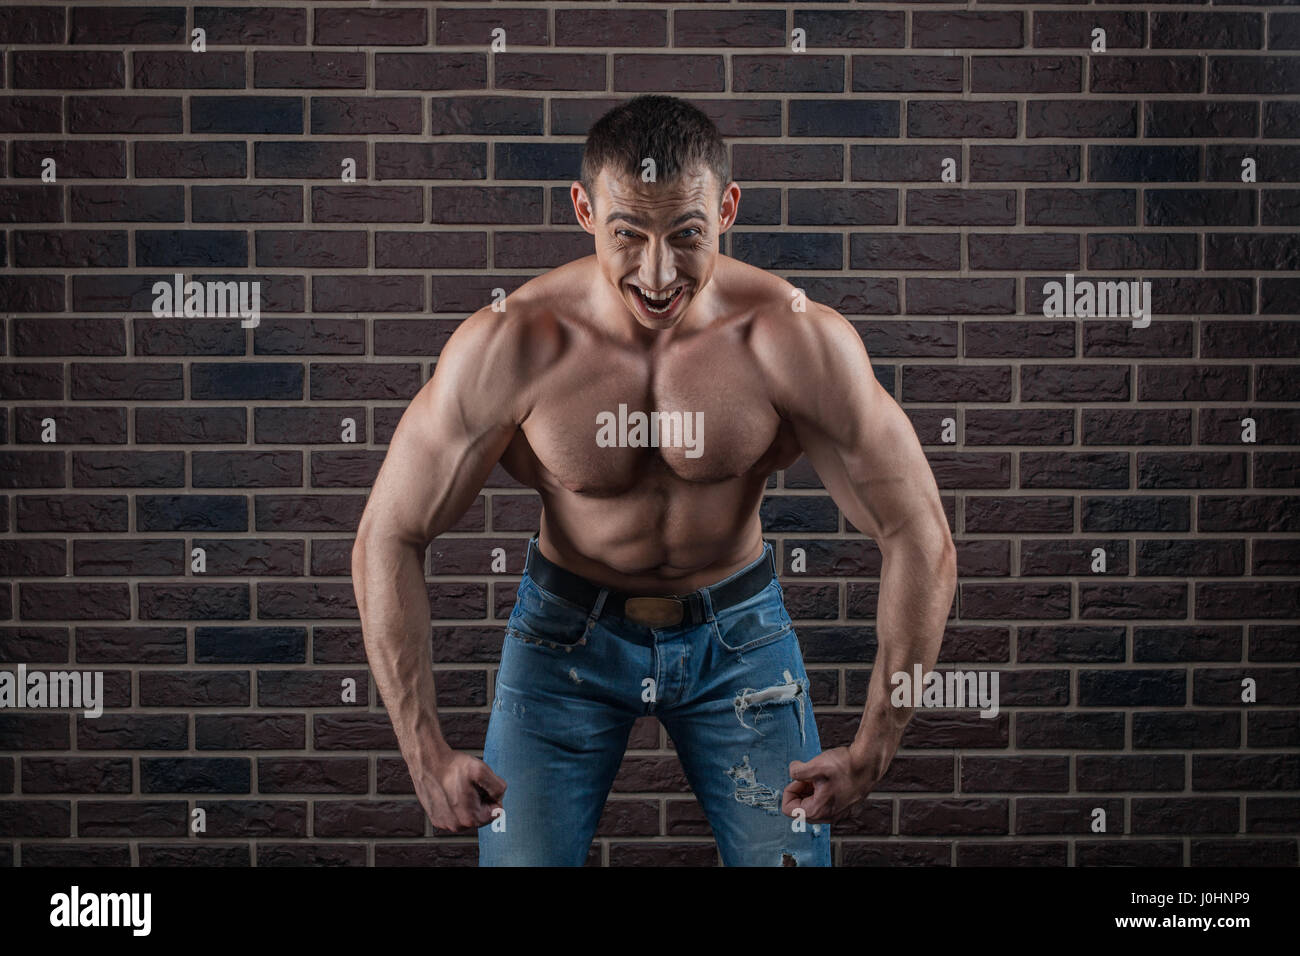 Bodybuilder threatening growls much straining your muscles. - Stock Image